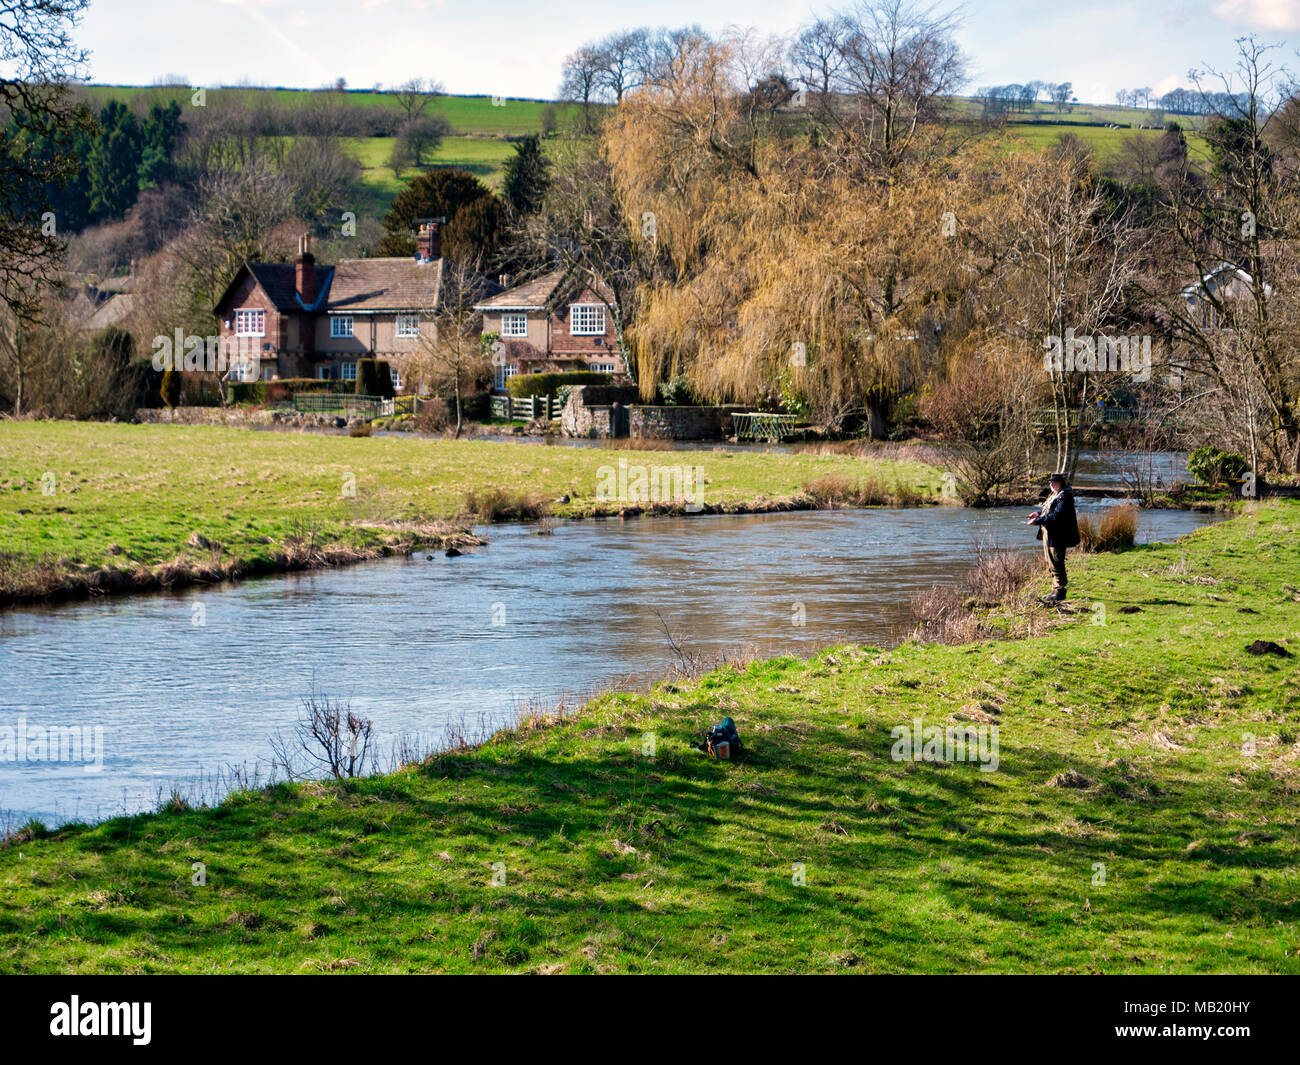 Peak District National Park. 5th Apr, 2018. UK Weather: fly fisherman enjoying the glorious sunshine on Thursday after the wet Easter Bank Holiday break at Ashford on the Water, near Bakewell in the Peak District National Park Credit: Doug Blane/Alamy Live News - Stock Image